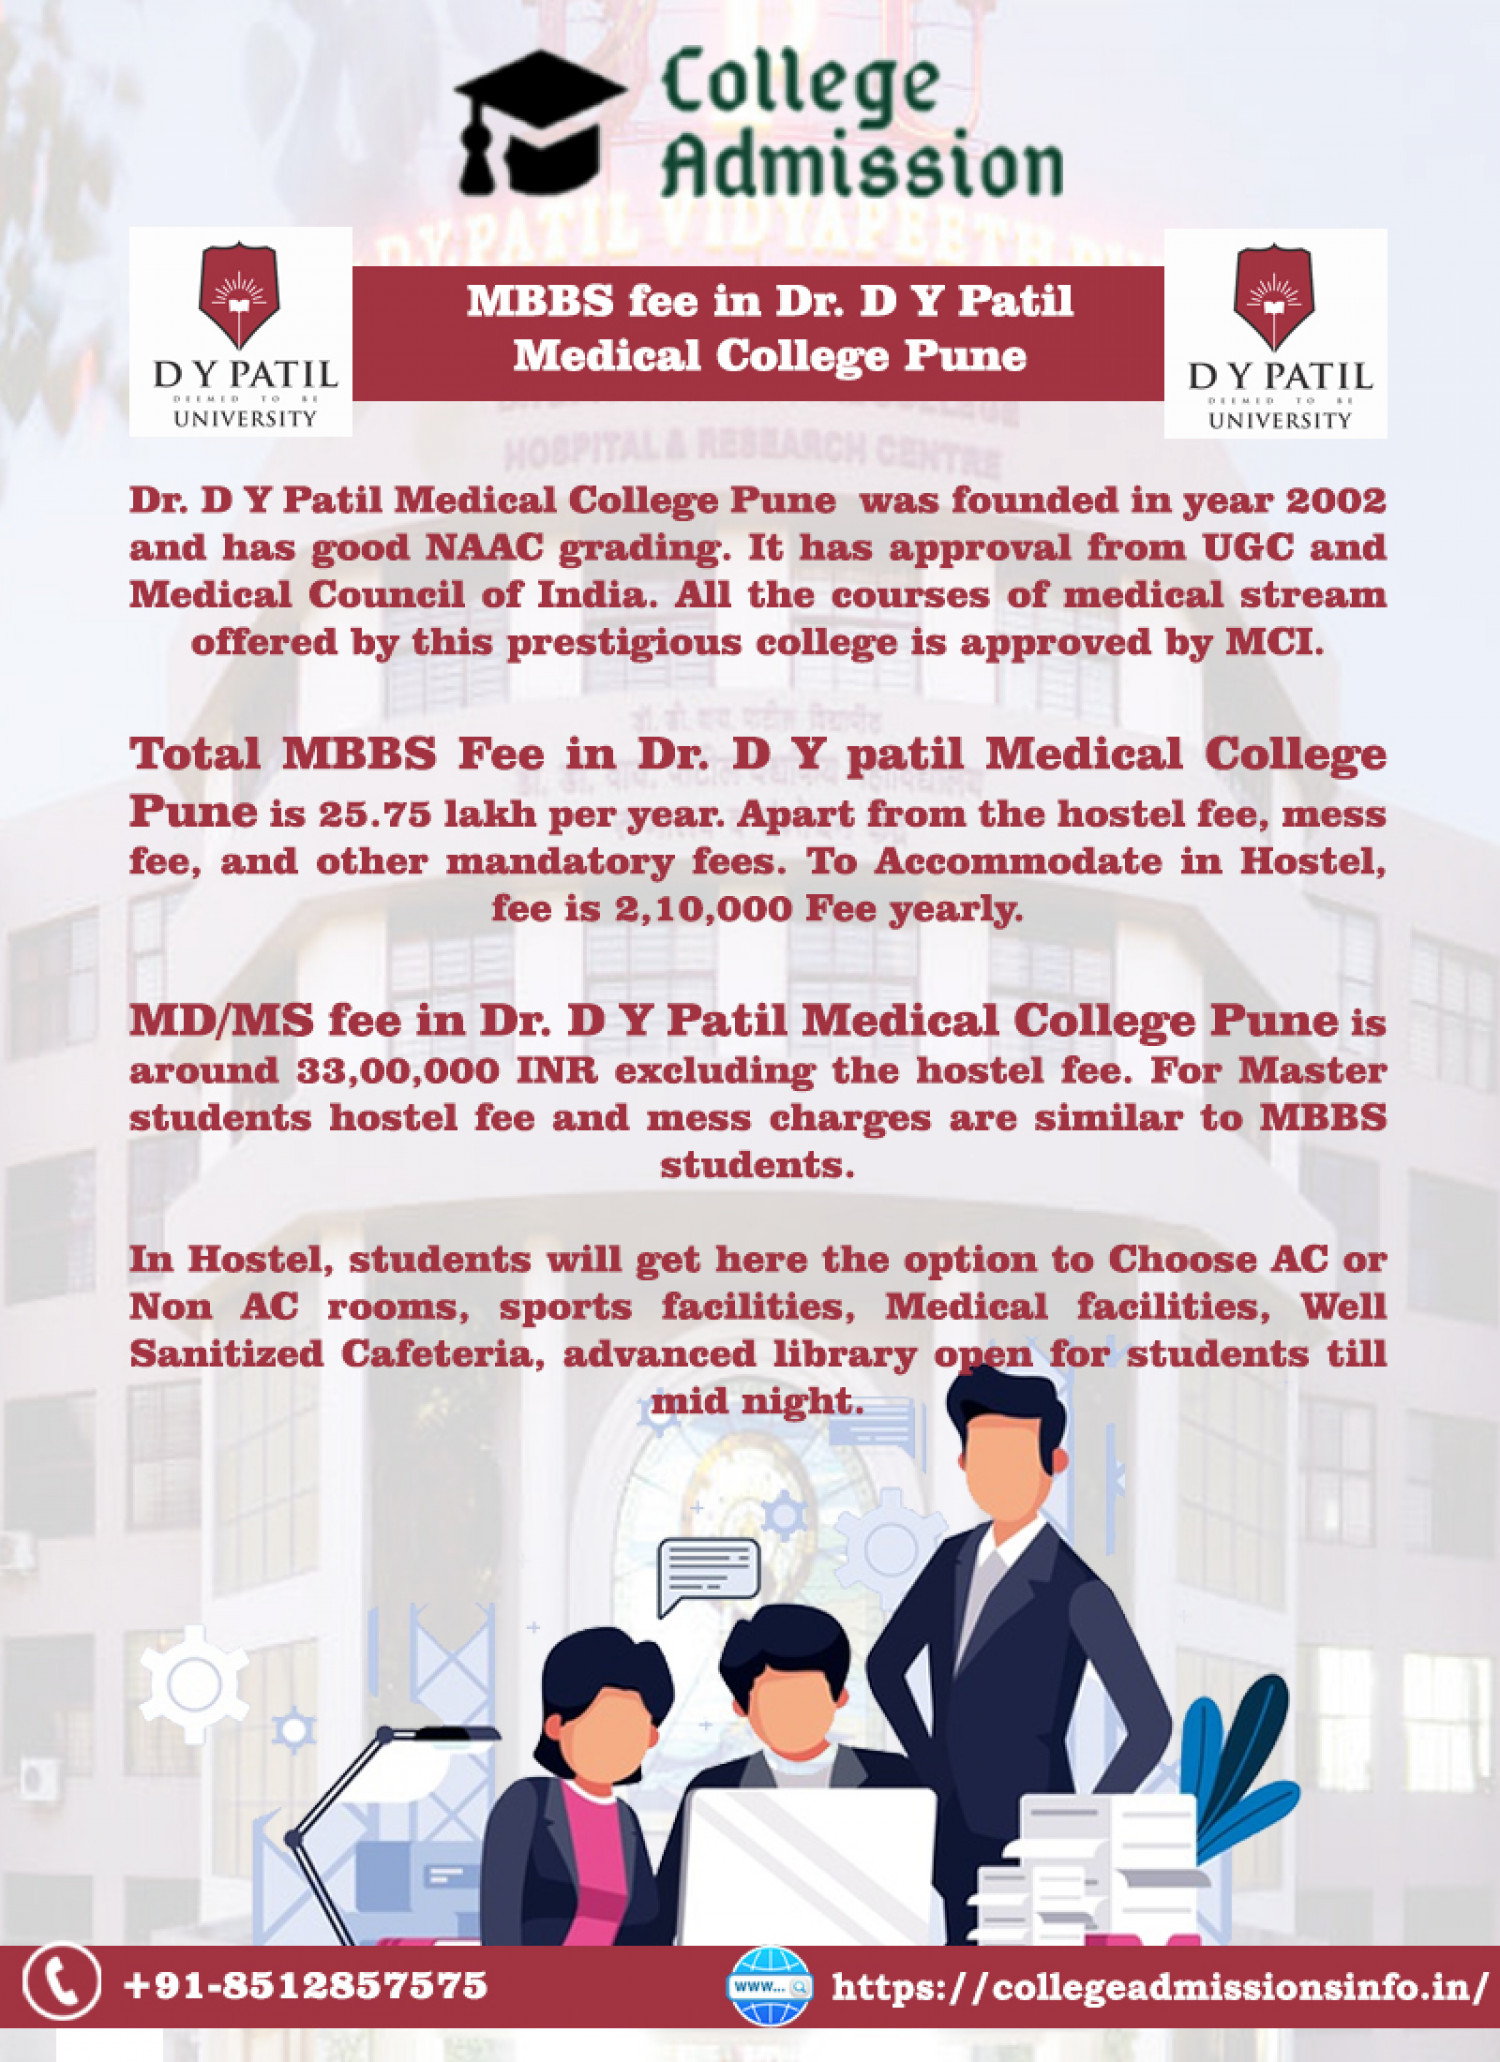 Get the MBBS fee structure detail in DY Patil Medical College Infographic